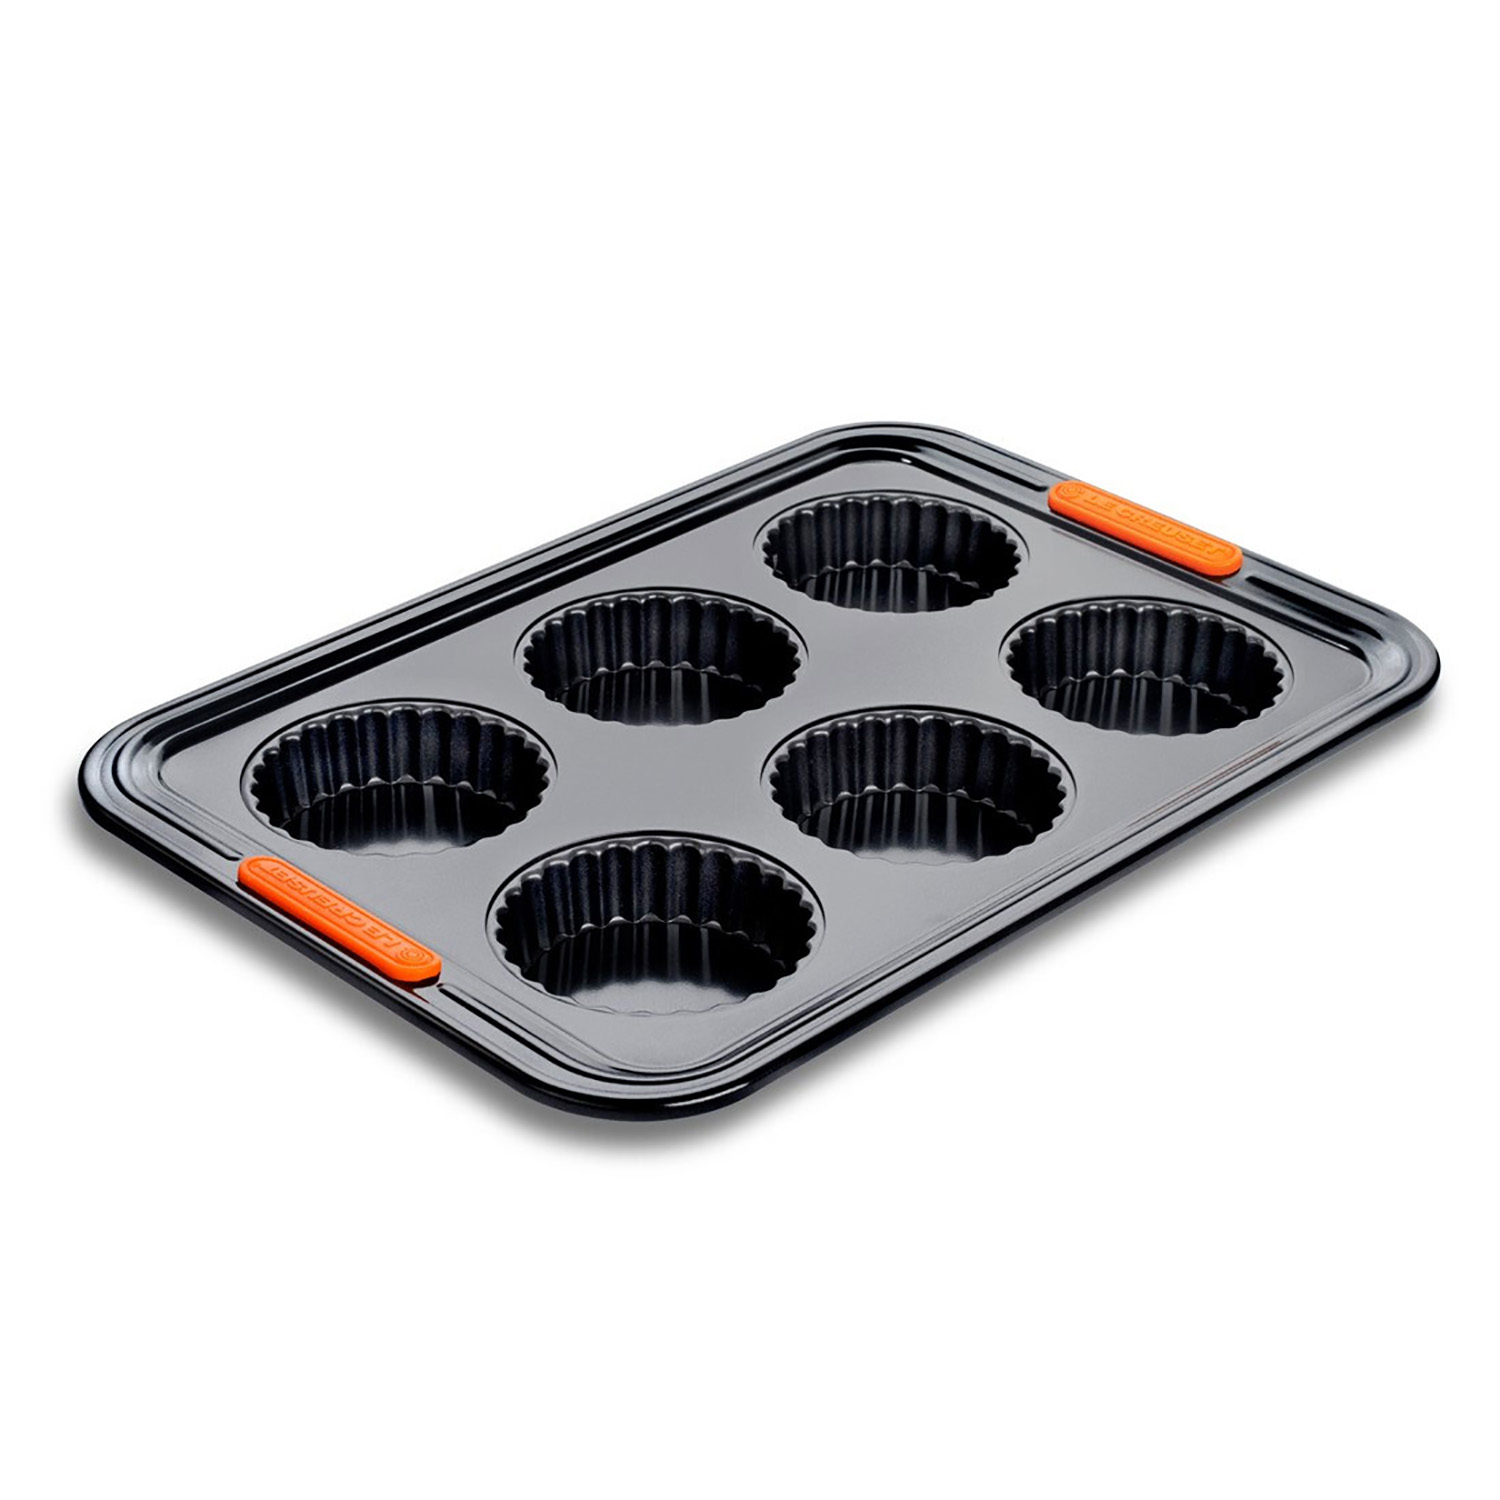 Image of Le Creuset 6 Cup Tart Tray